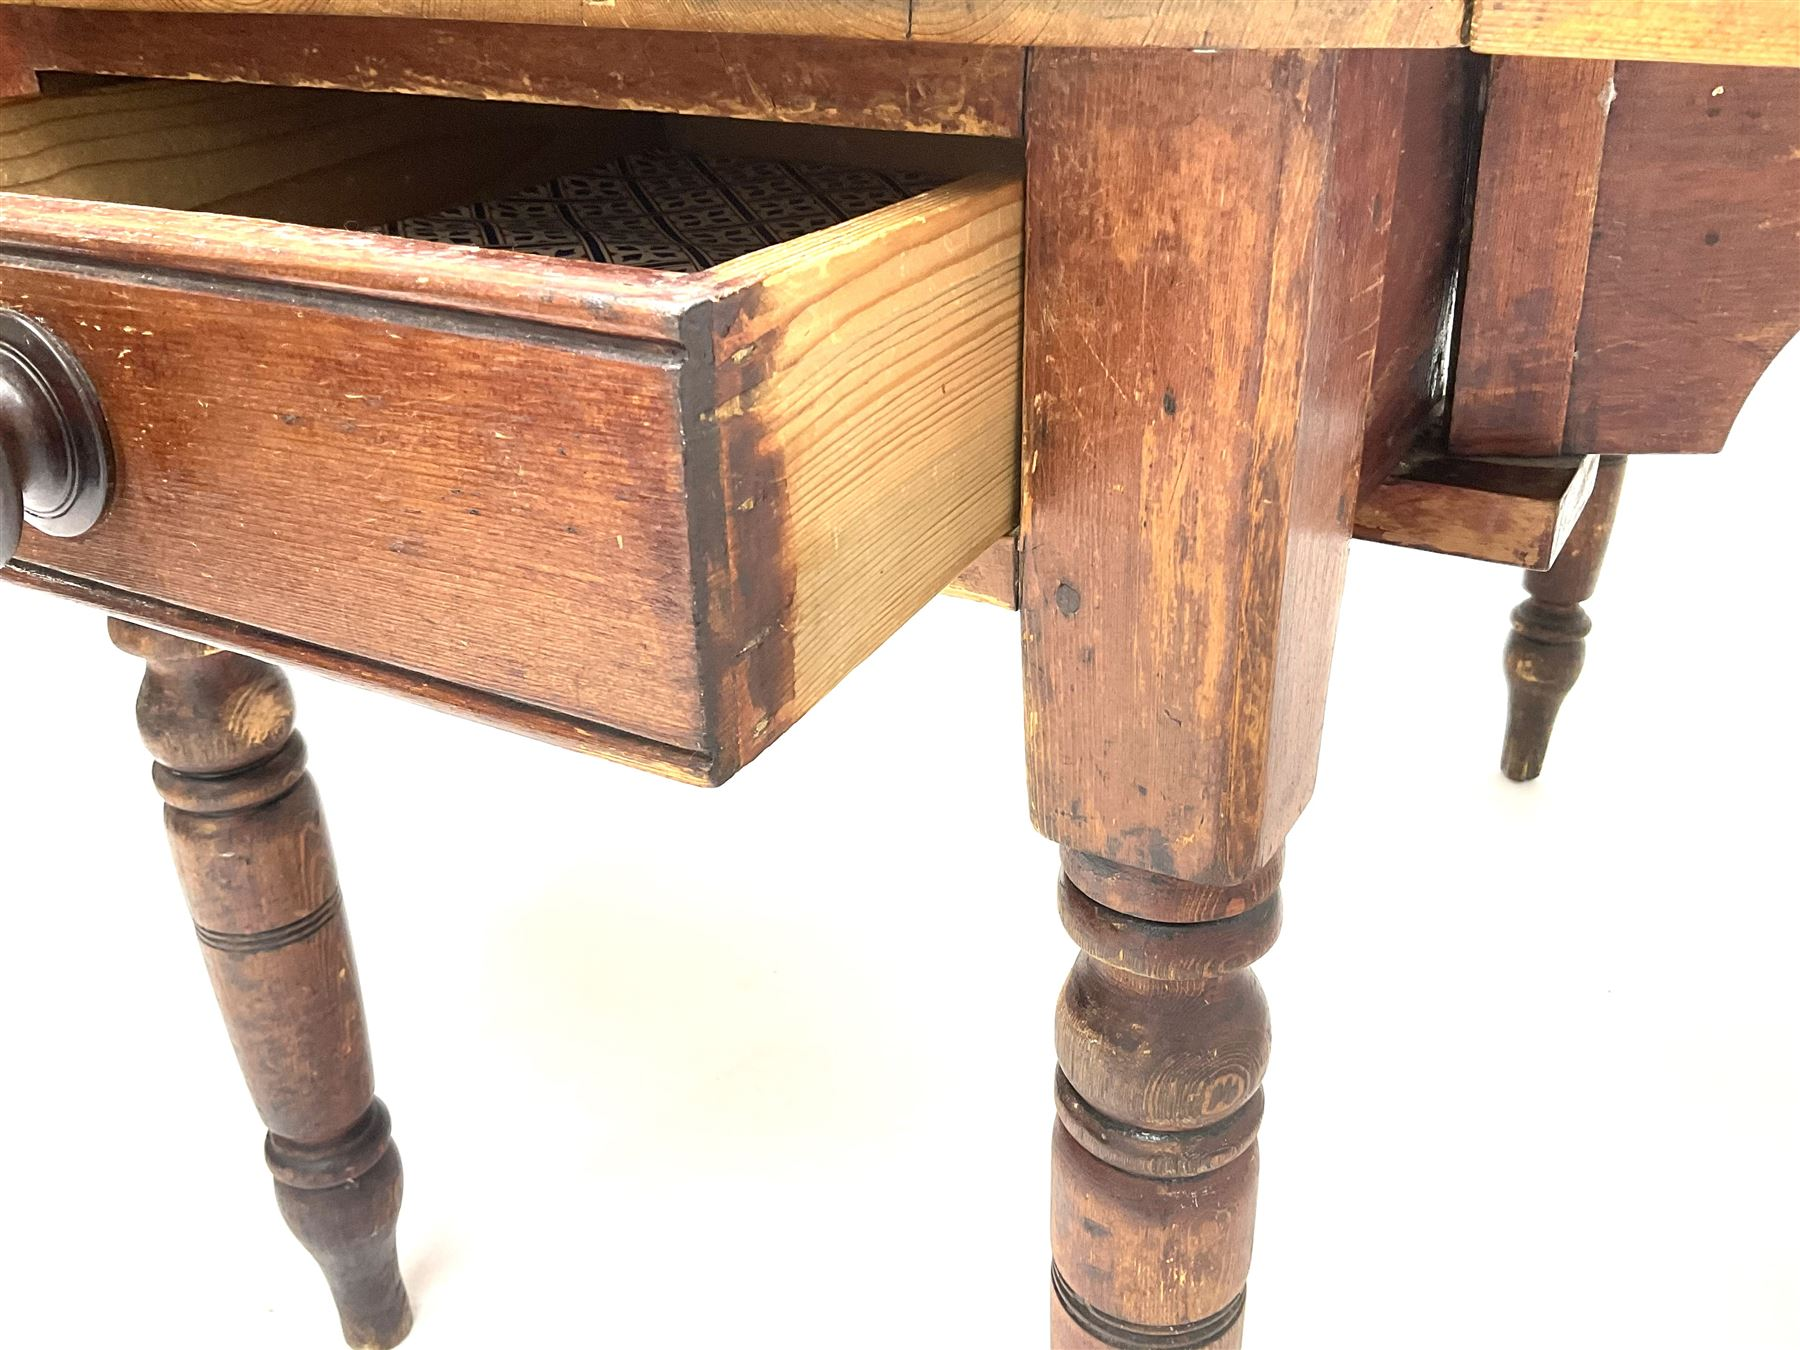 Victorian stained and polished pine drop leaf kitchen table - Image 3 of 4